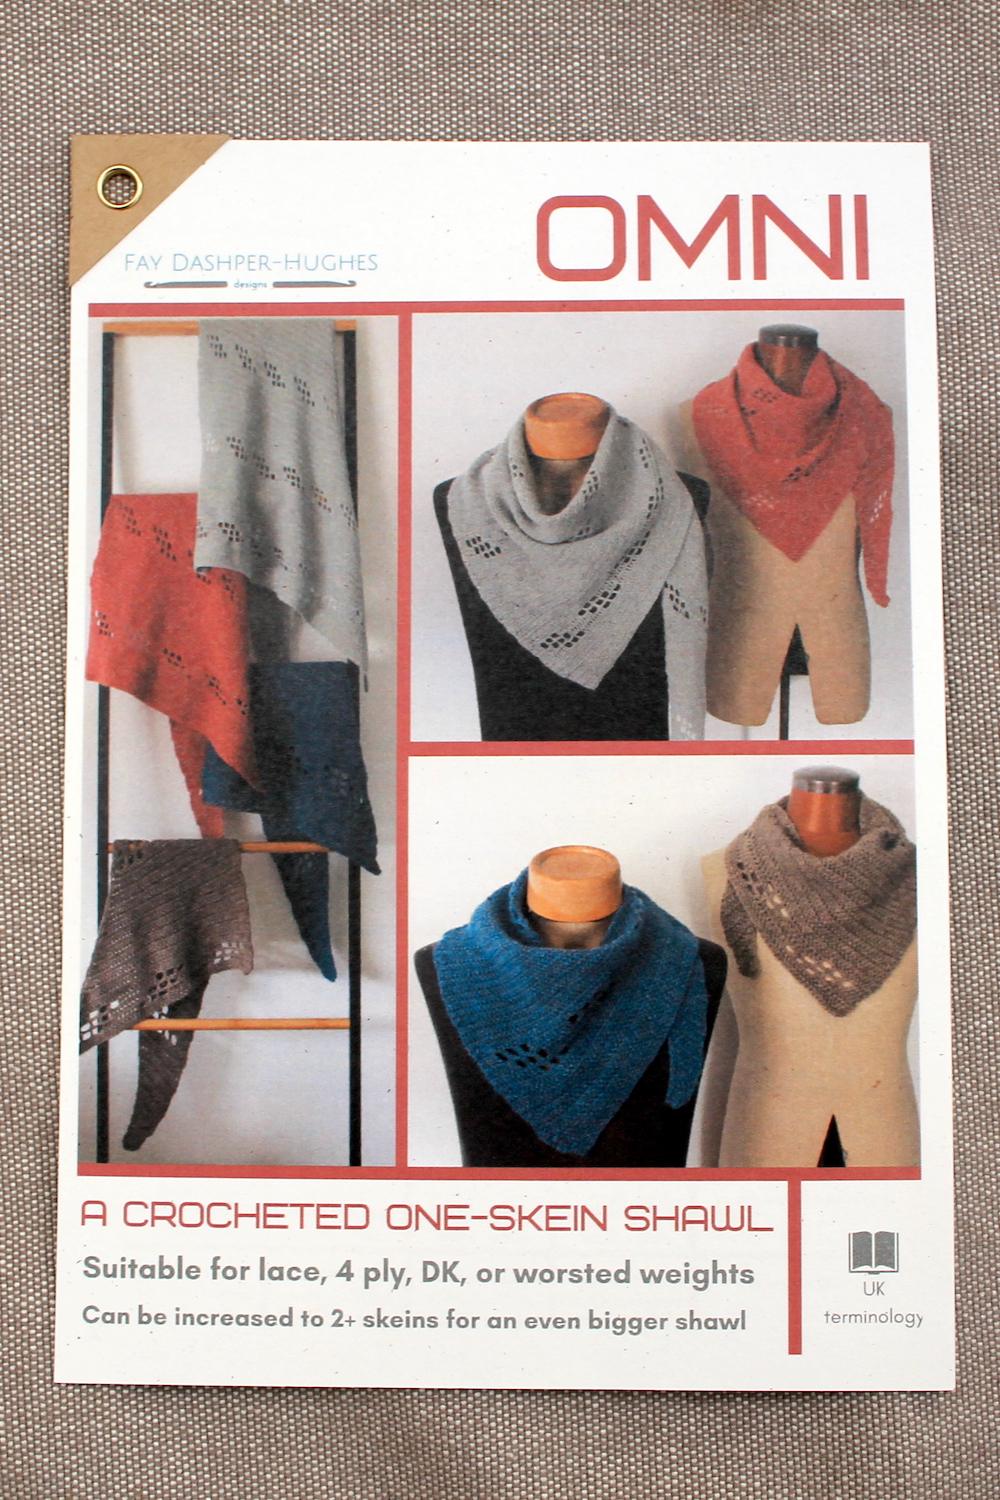 A printed copy of Omni crochet pattern